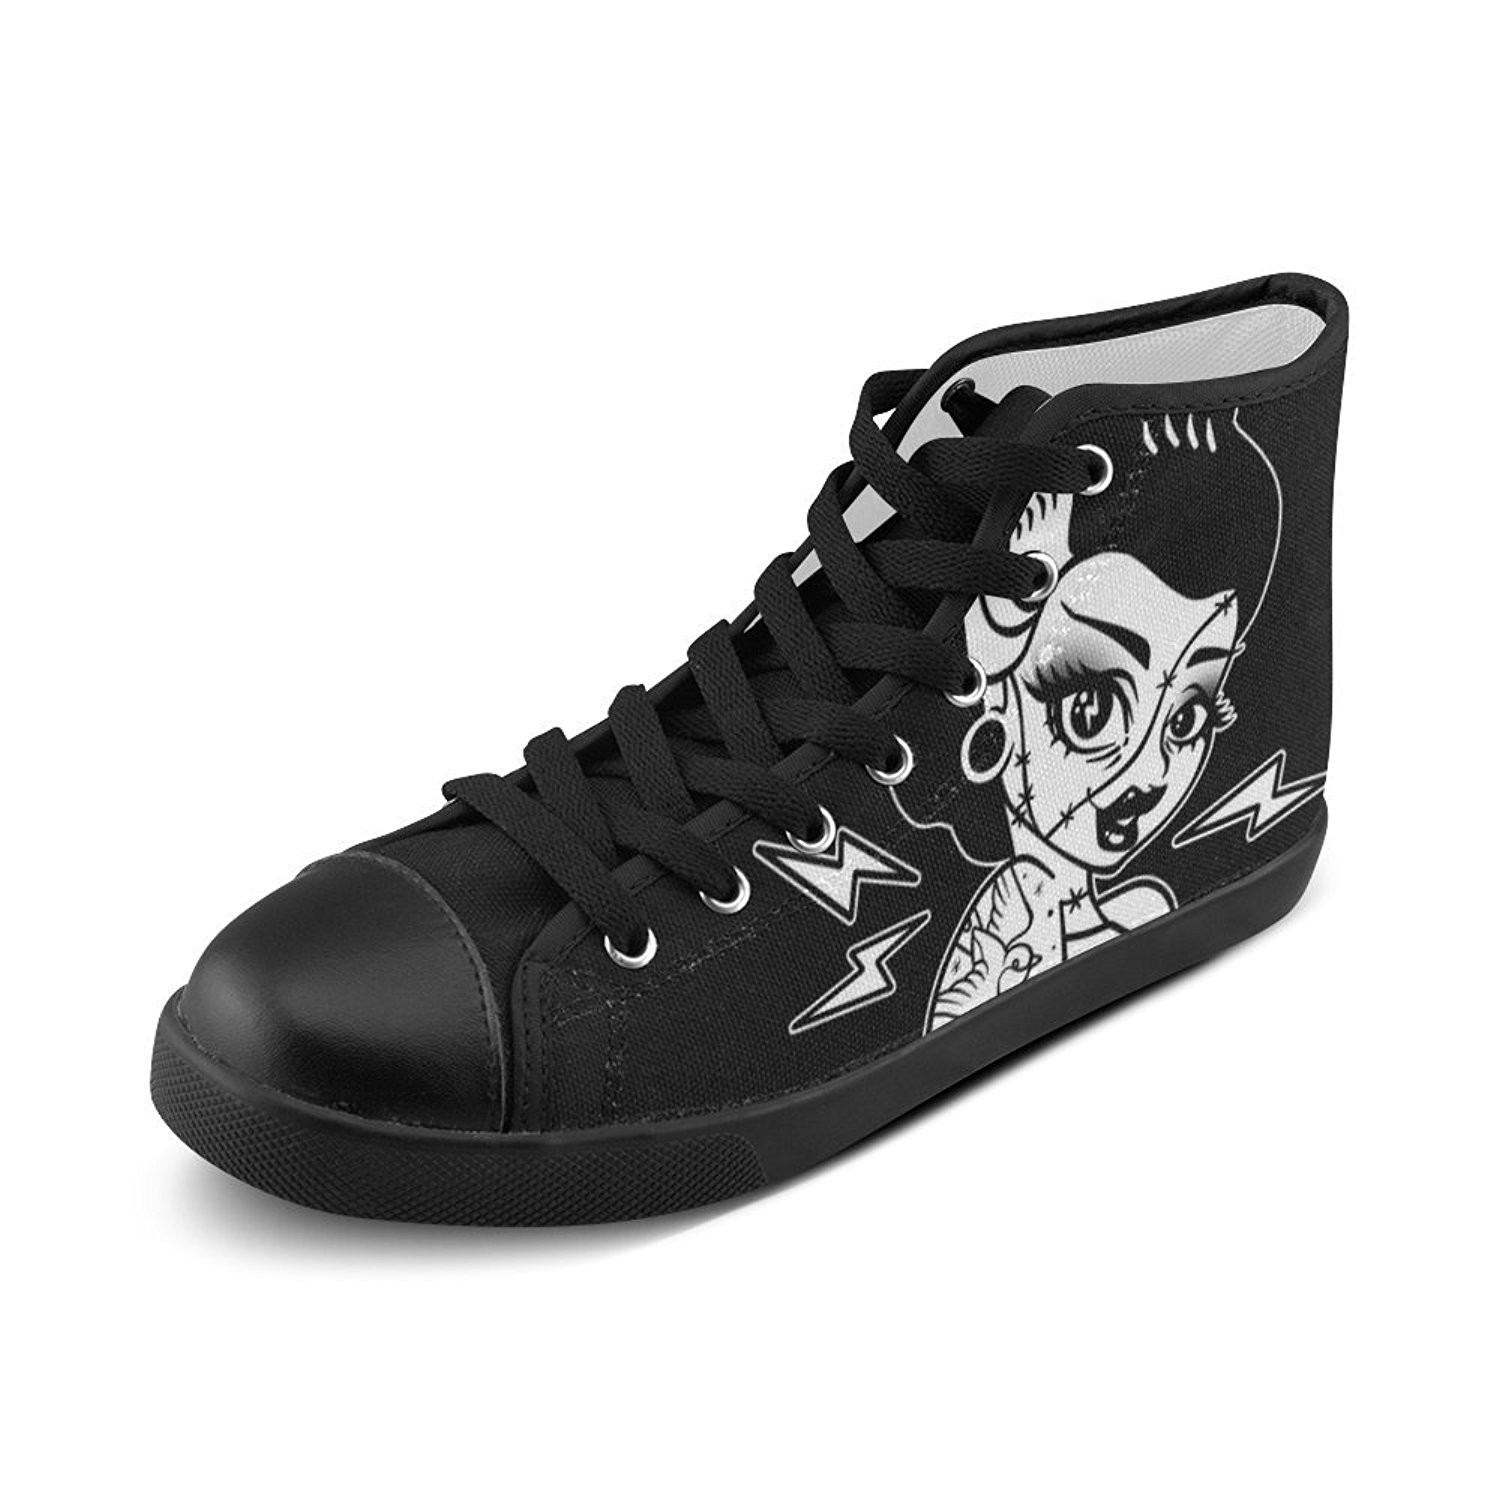 d82d682f8b70 Get Quotations · Artsadd Artsdd Custom Frankie Pinup Chuck Taylors High Top  Canvas Shoes For Womens(Model002)